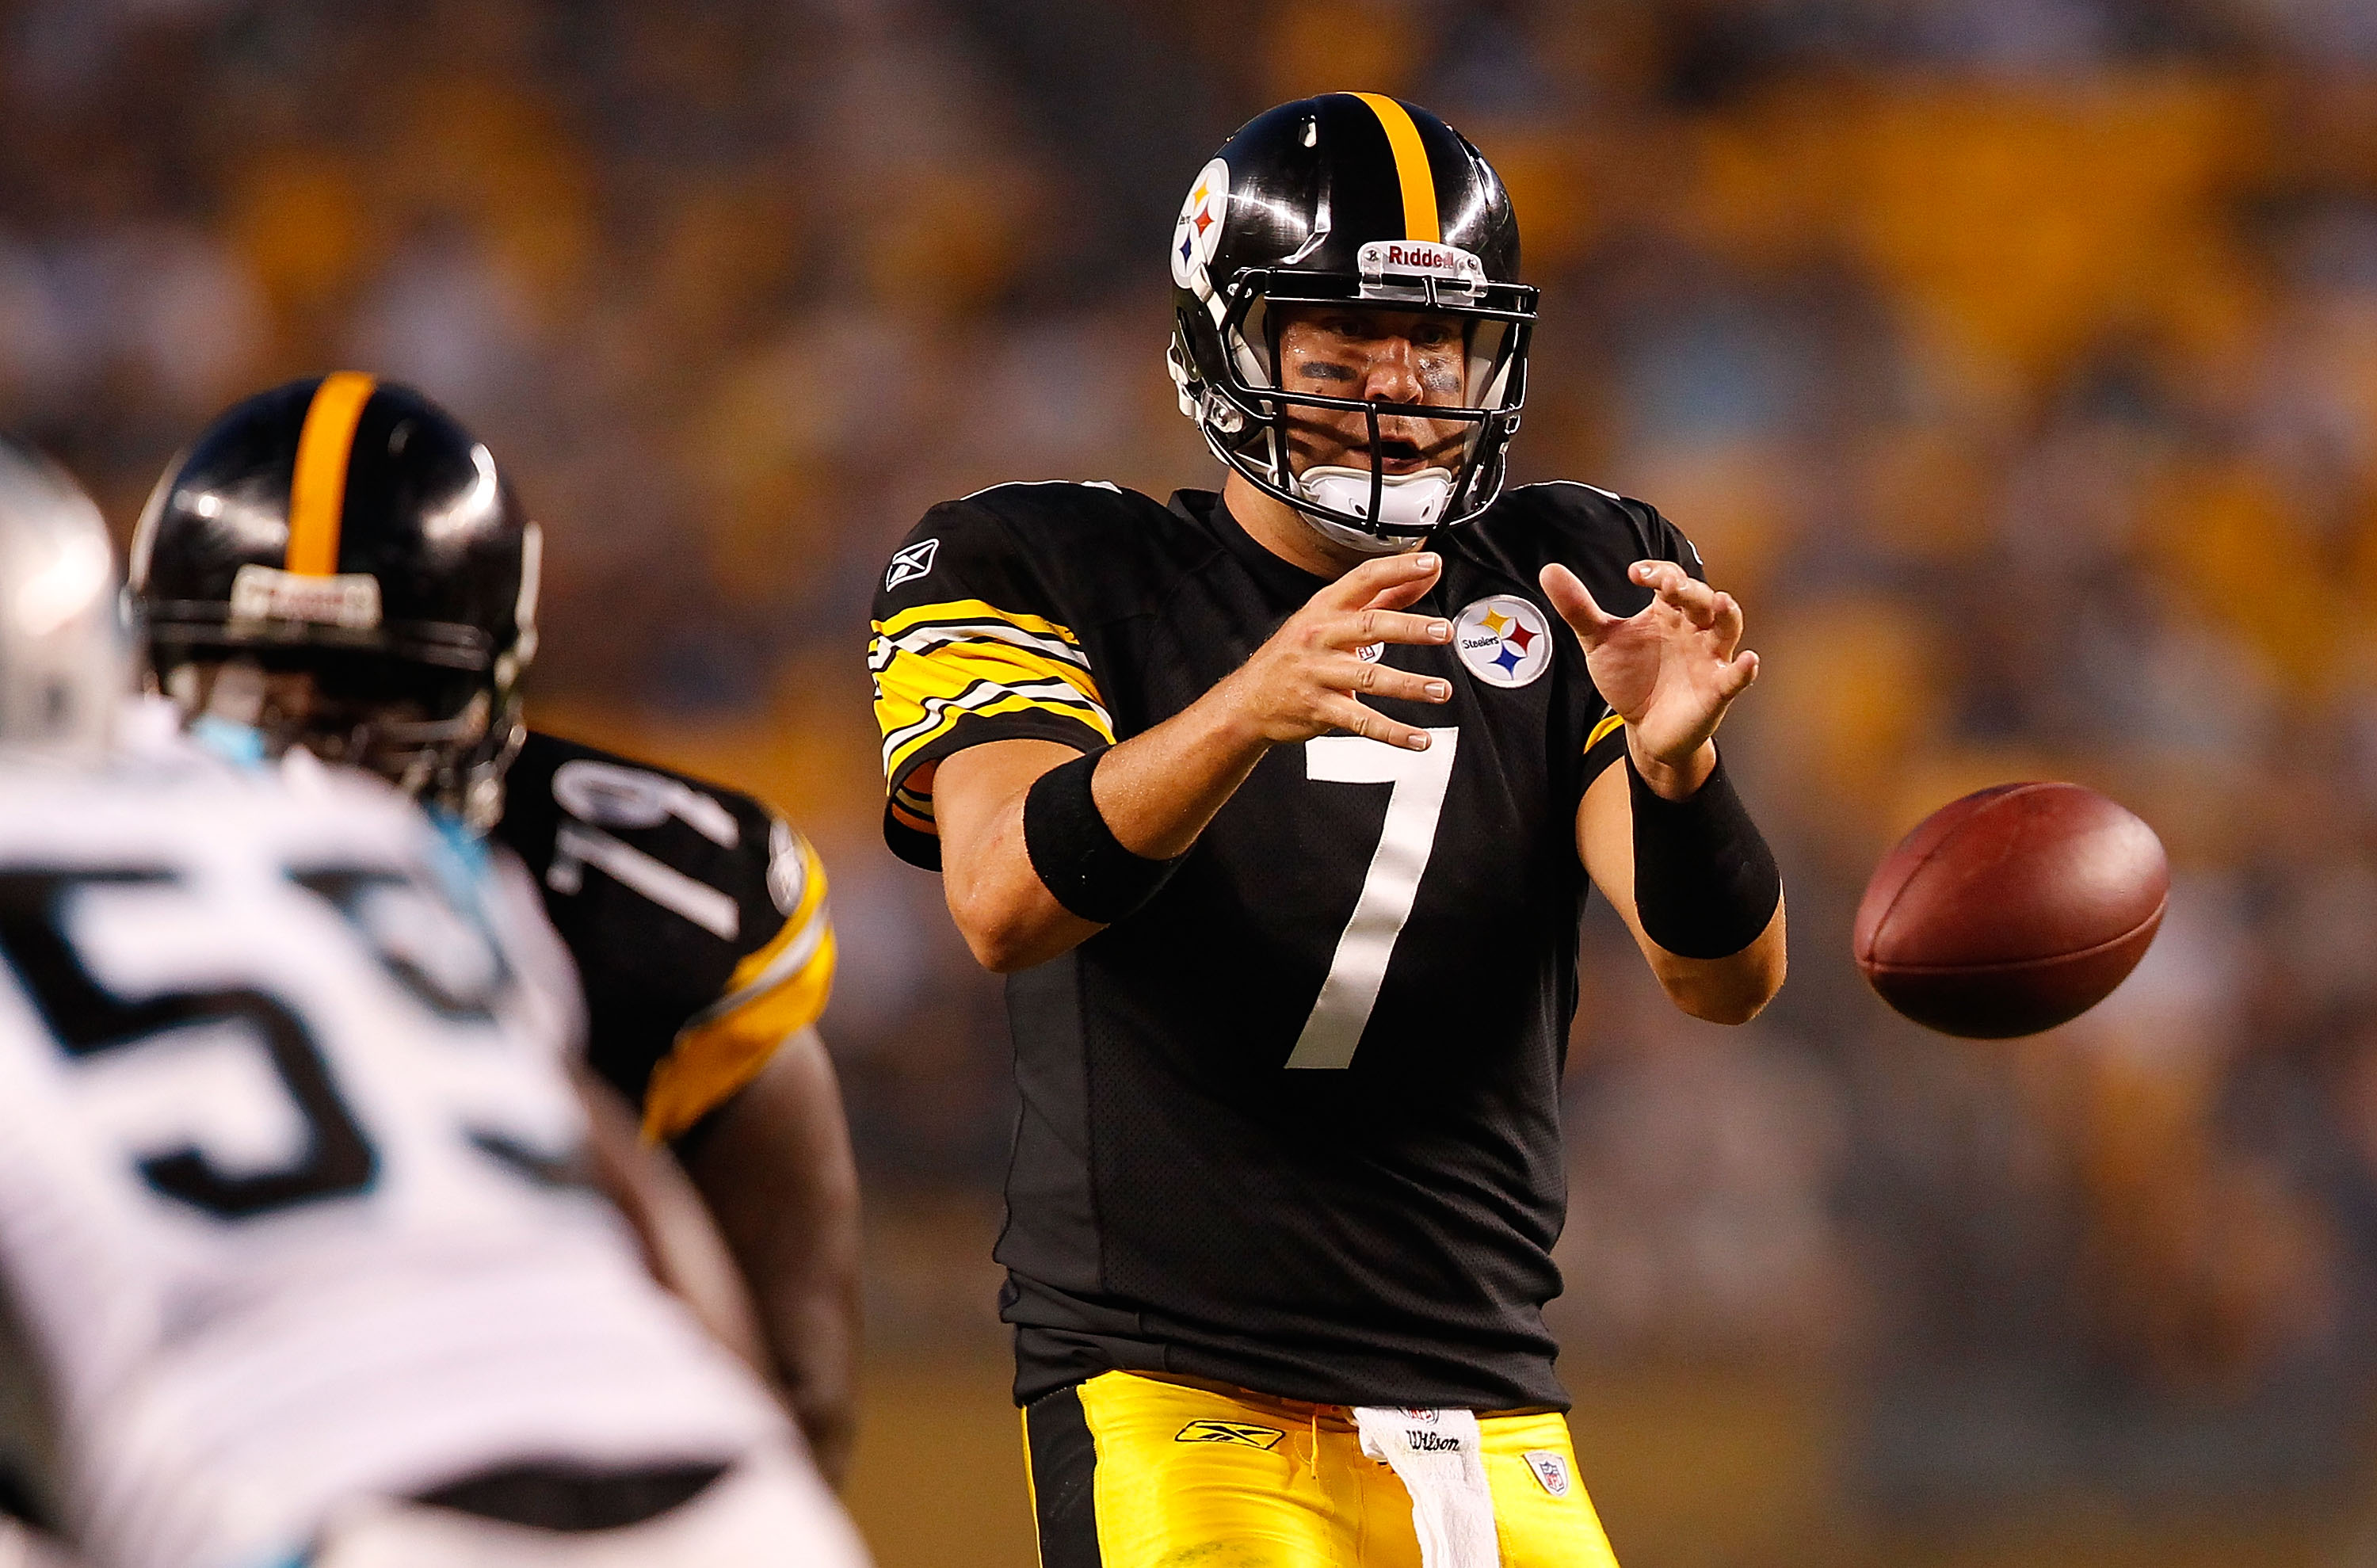 PITTSBURGH - SEPTEMBER 02: Ben Roethlisberger #7 of the Pittsburgh Steelers drops back to pass against the Carolina Panthers during the preseason game on September 2, 2010 at Heinz Field in Pittsburgh, Pennsylvania. (Photo by Jared Wickerham/Getty Images)